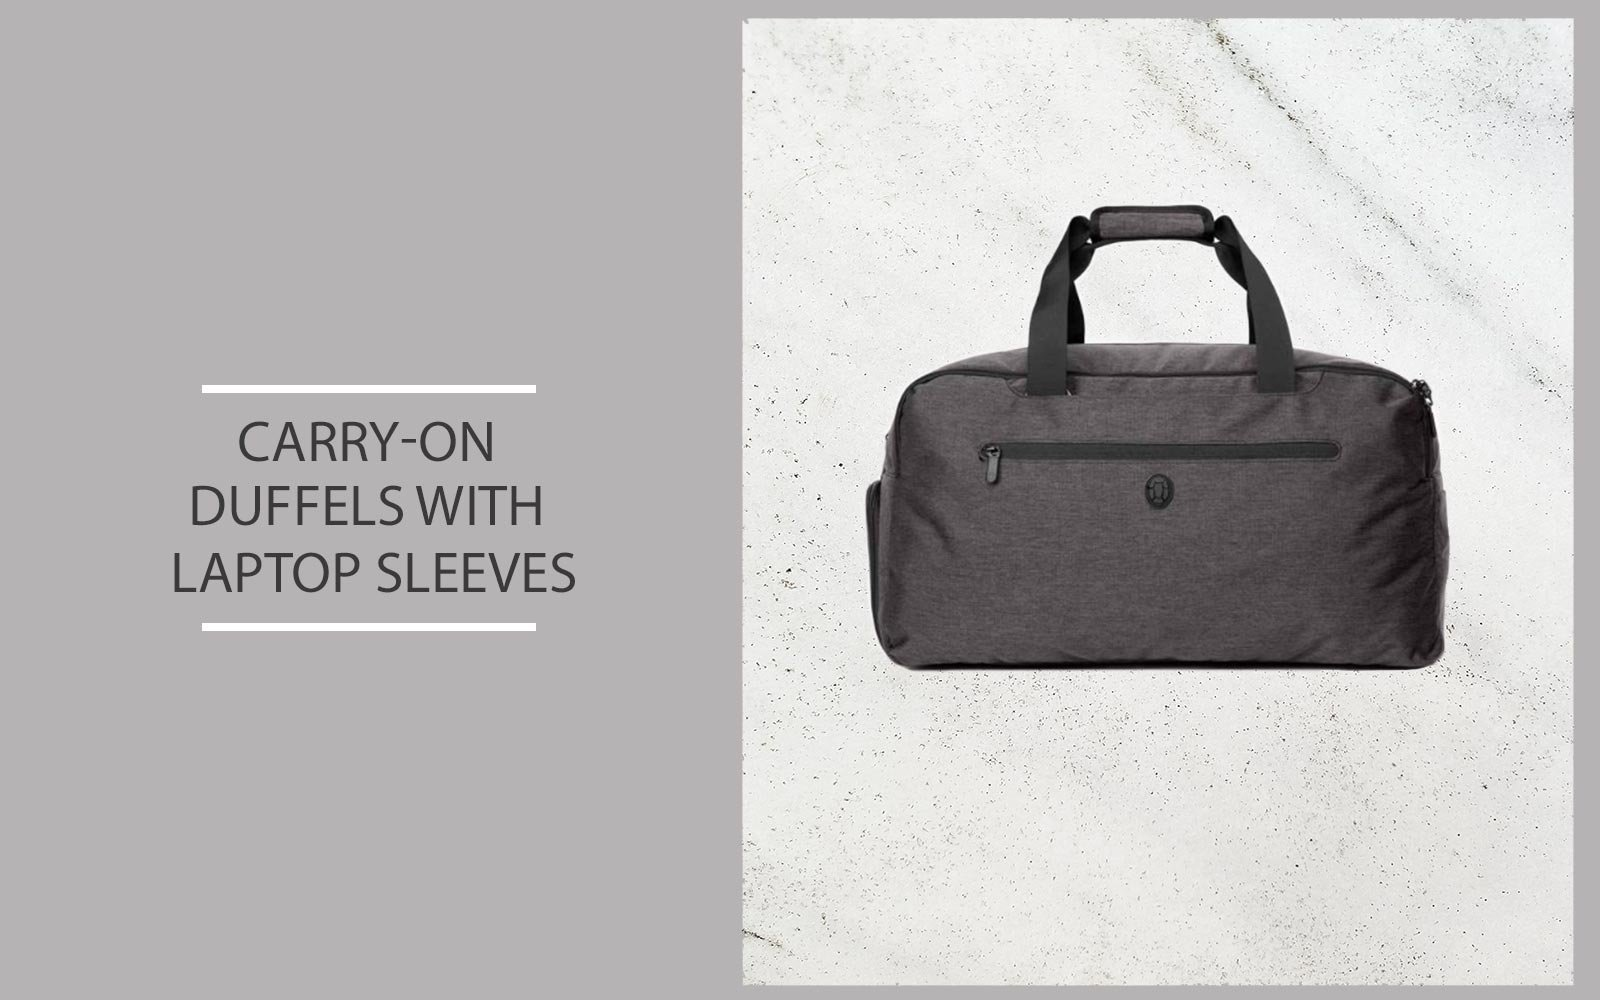 Duffel bag with laptop sleeve